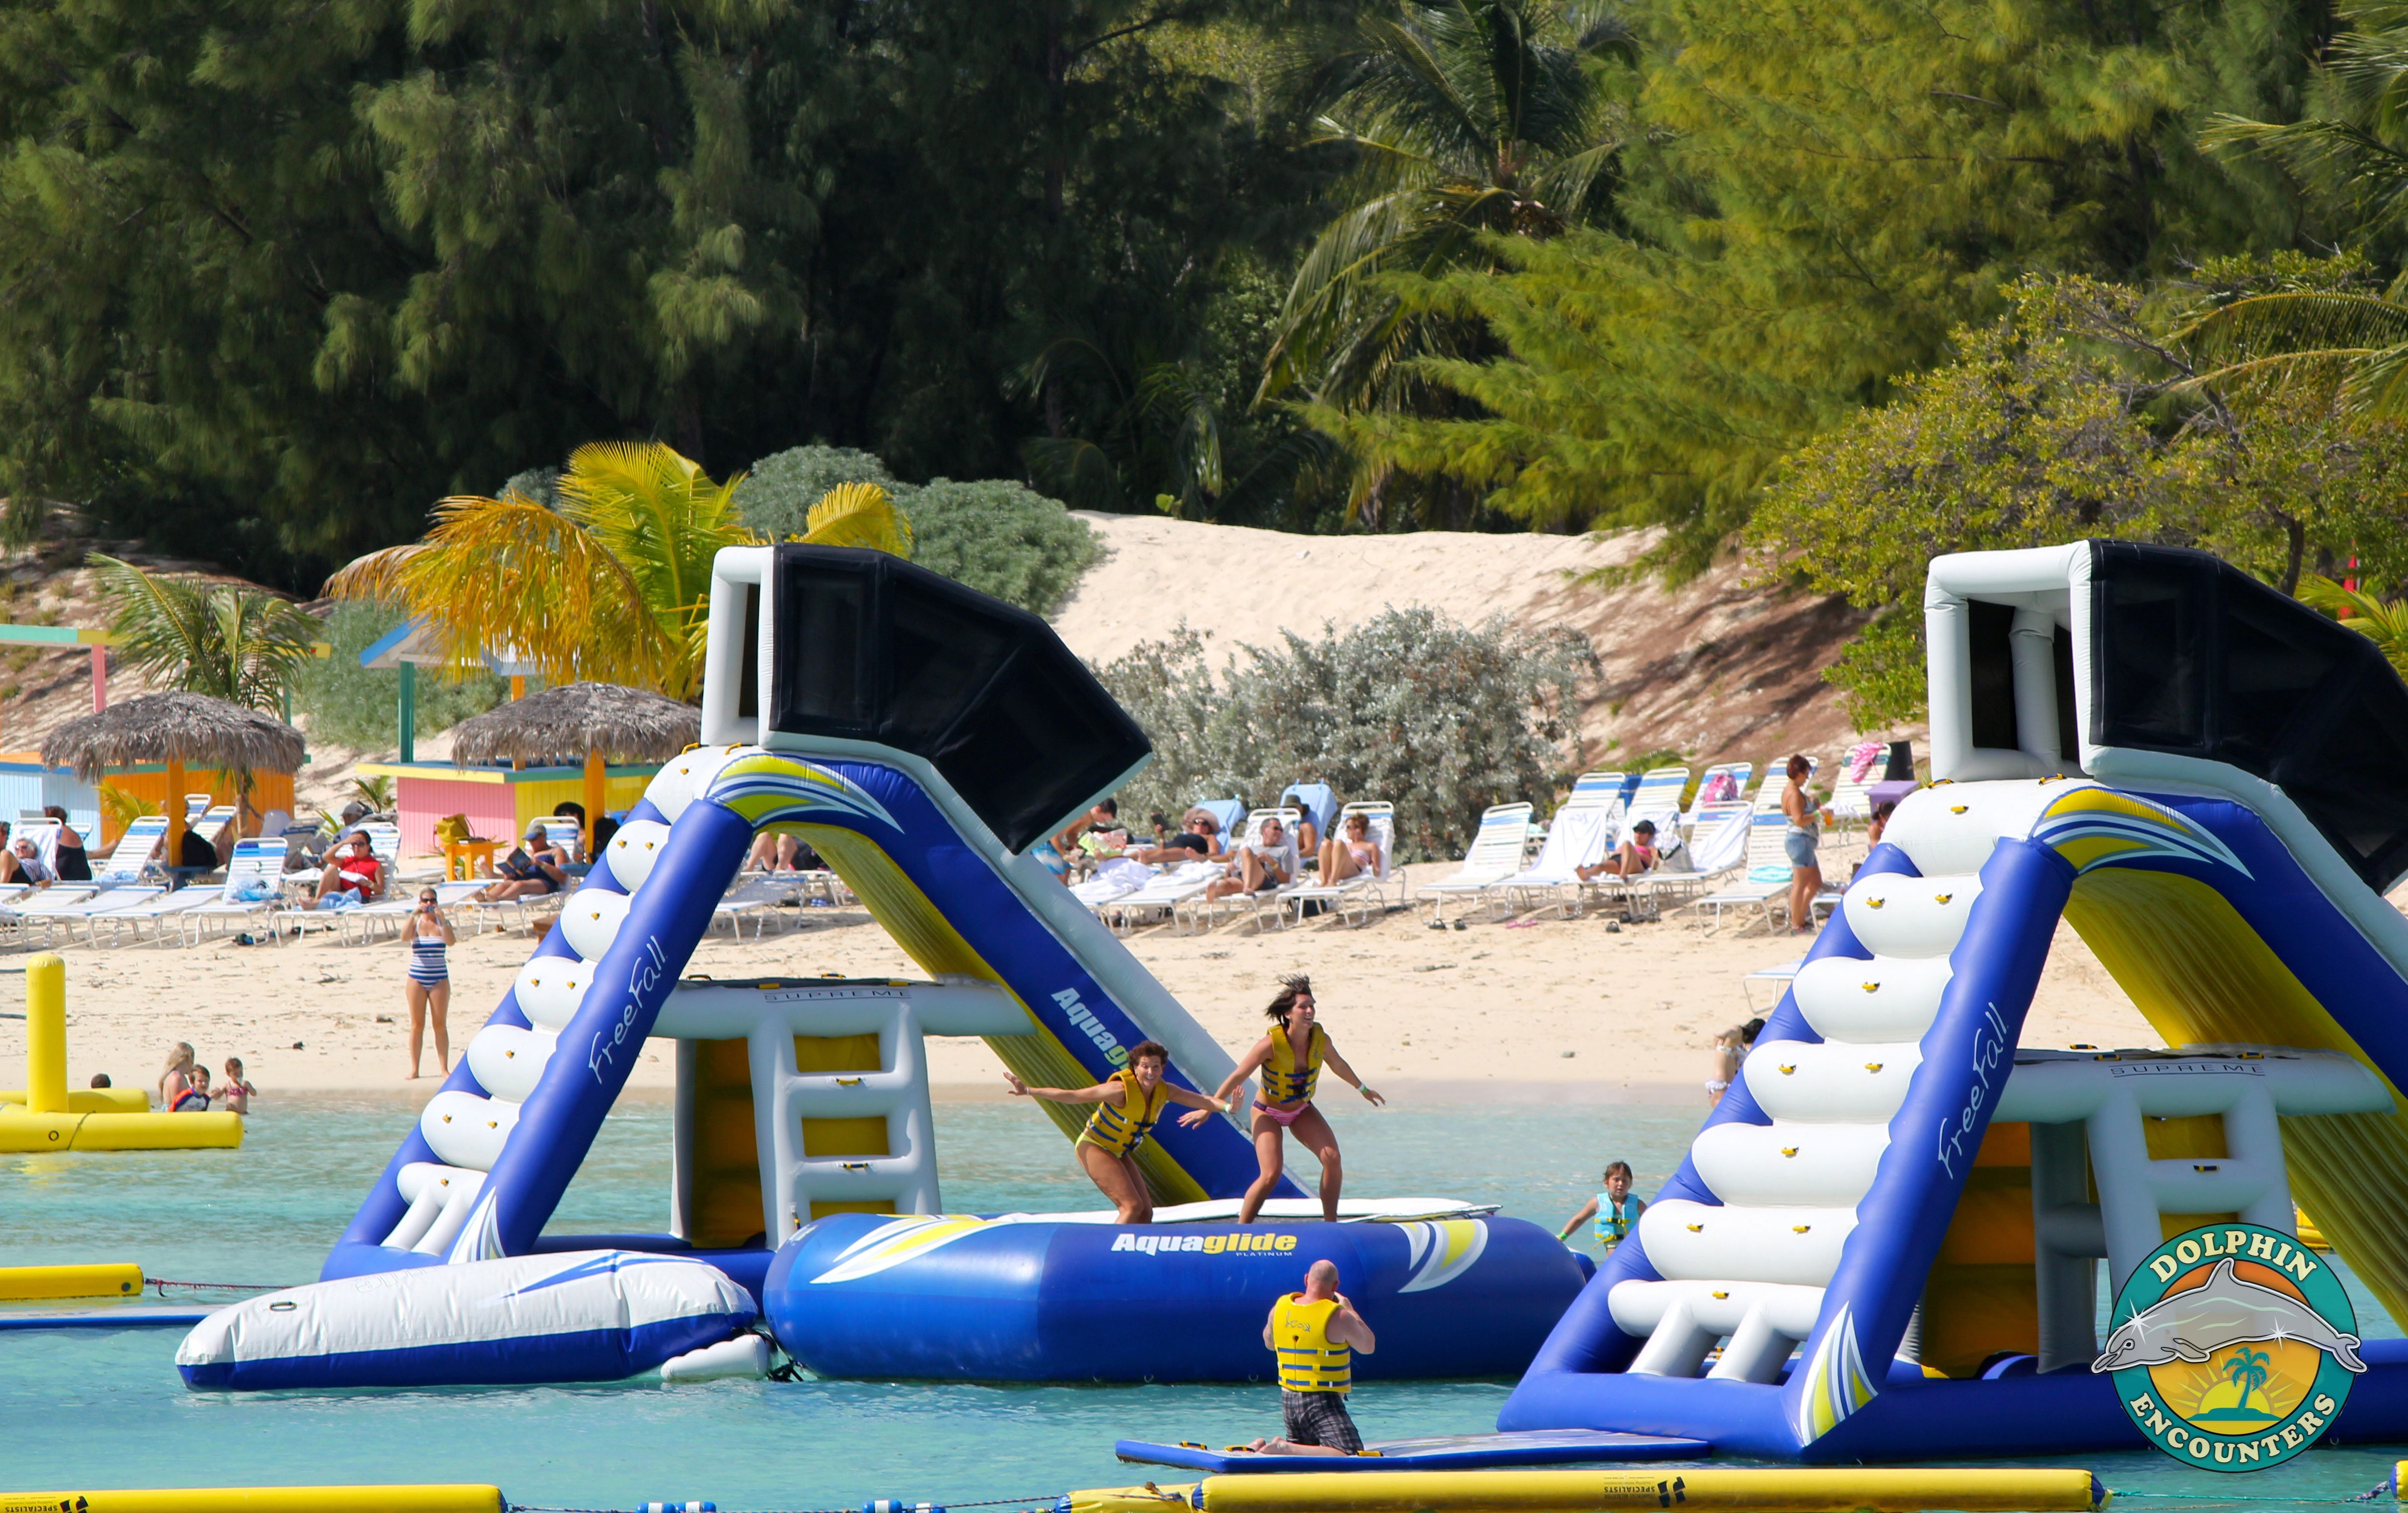 A Trampoline In Our Aquapark On Blue Lagoon Island In The